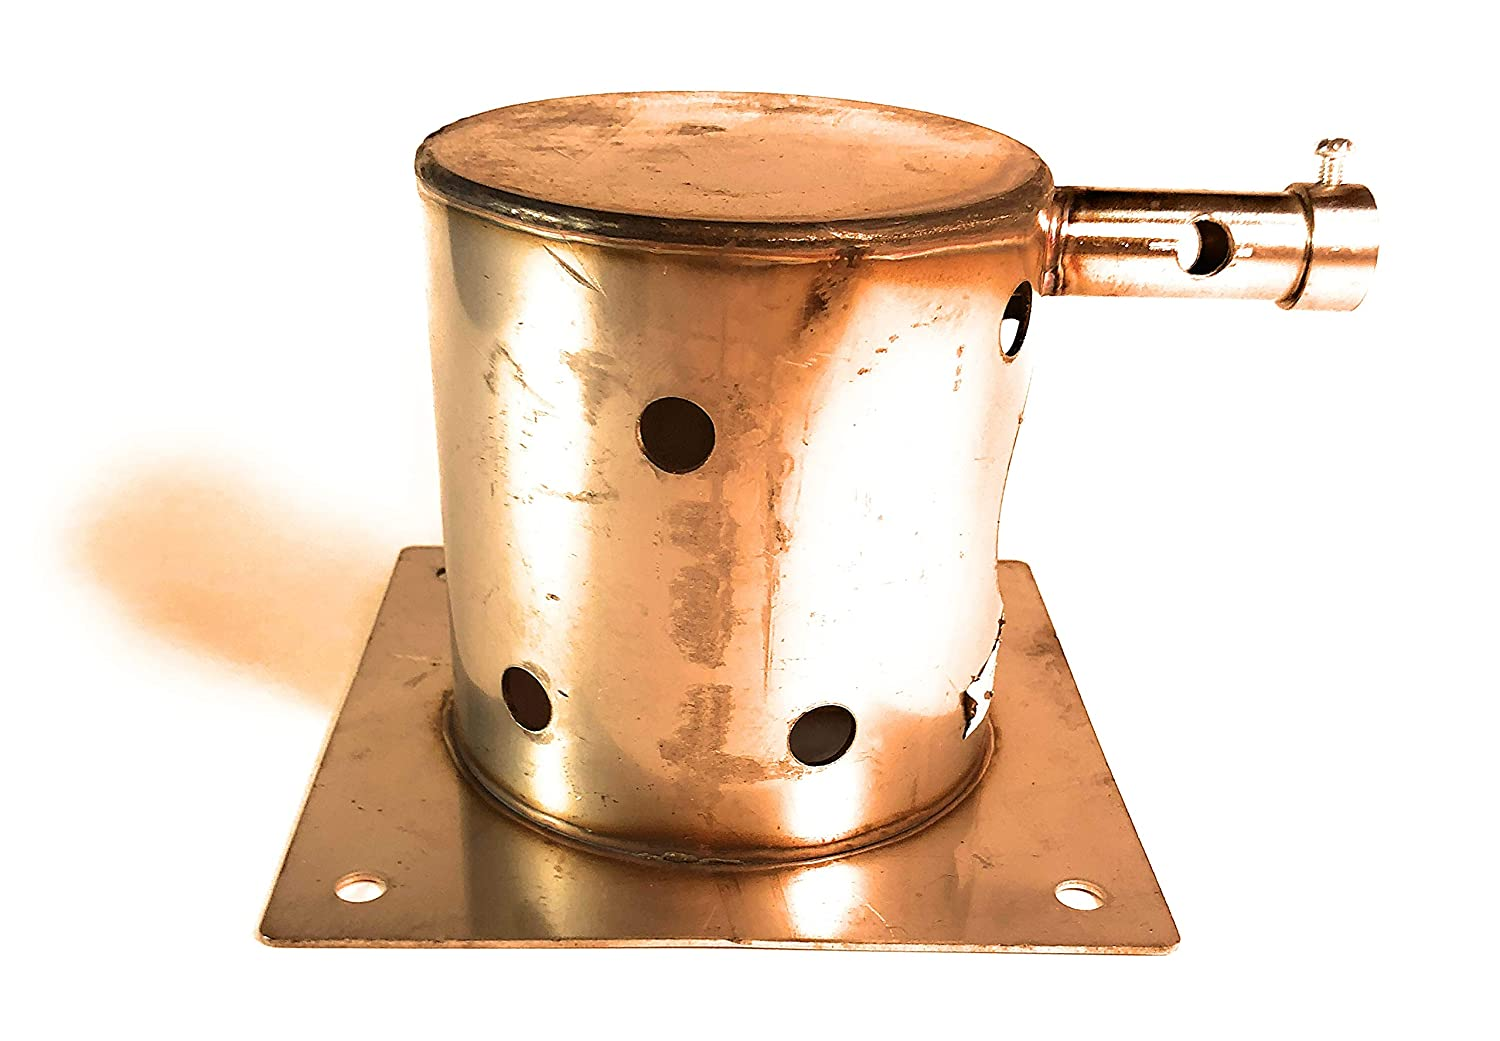 Stainless Steel Fire Pot for Traeger Grills